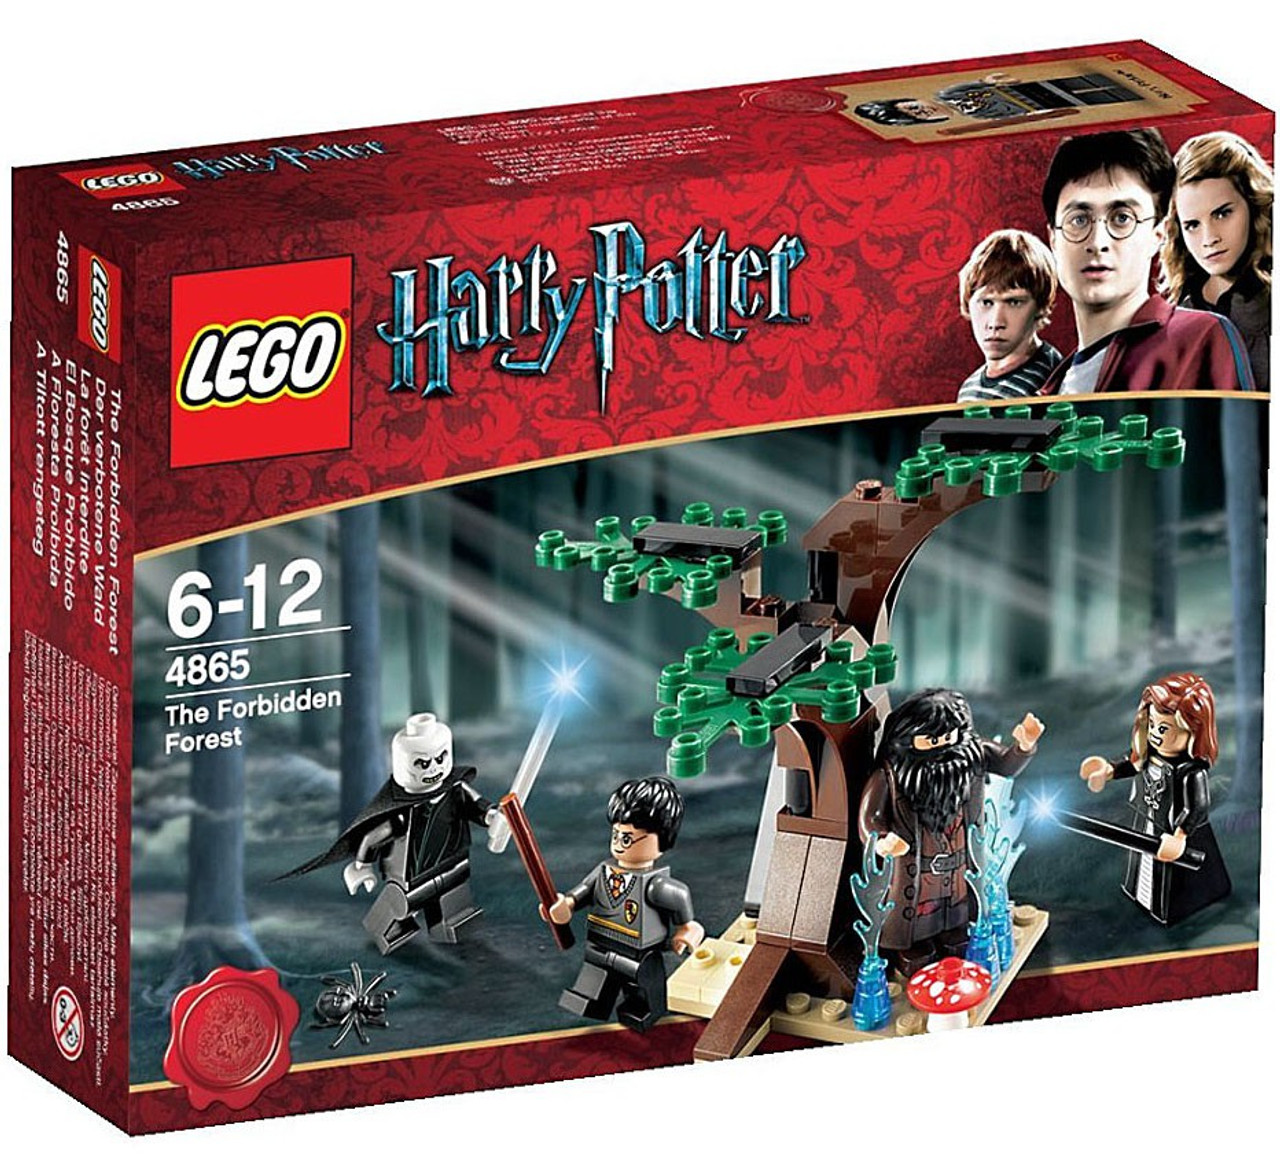 LEGO Harry Potter Series 2 The Forbidden Forest Set #4865